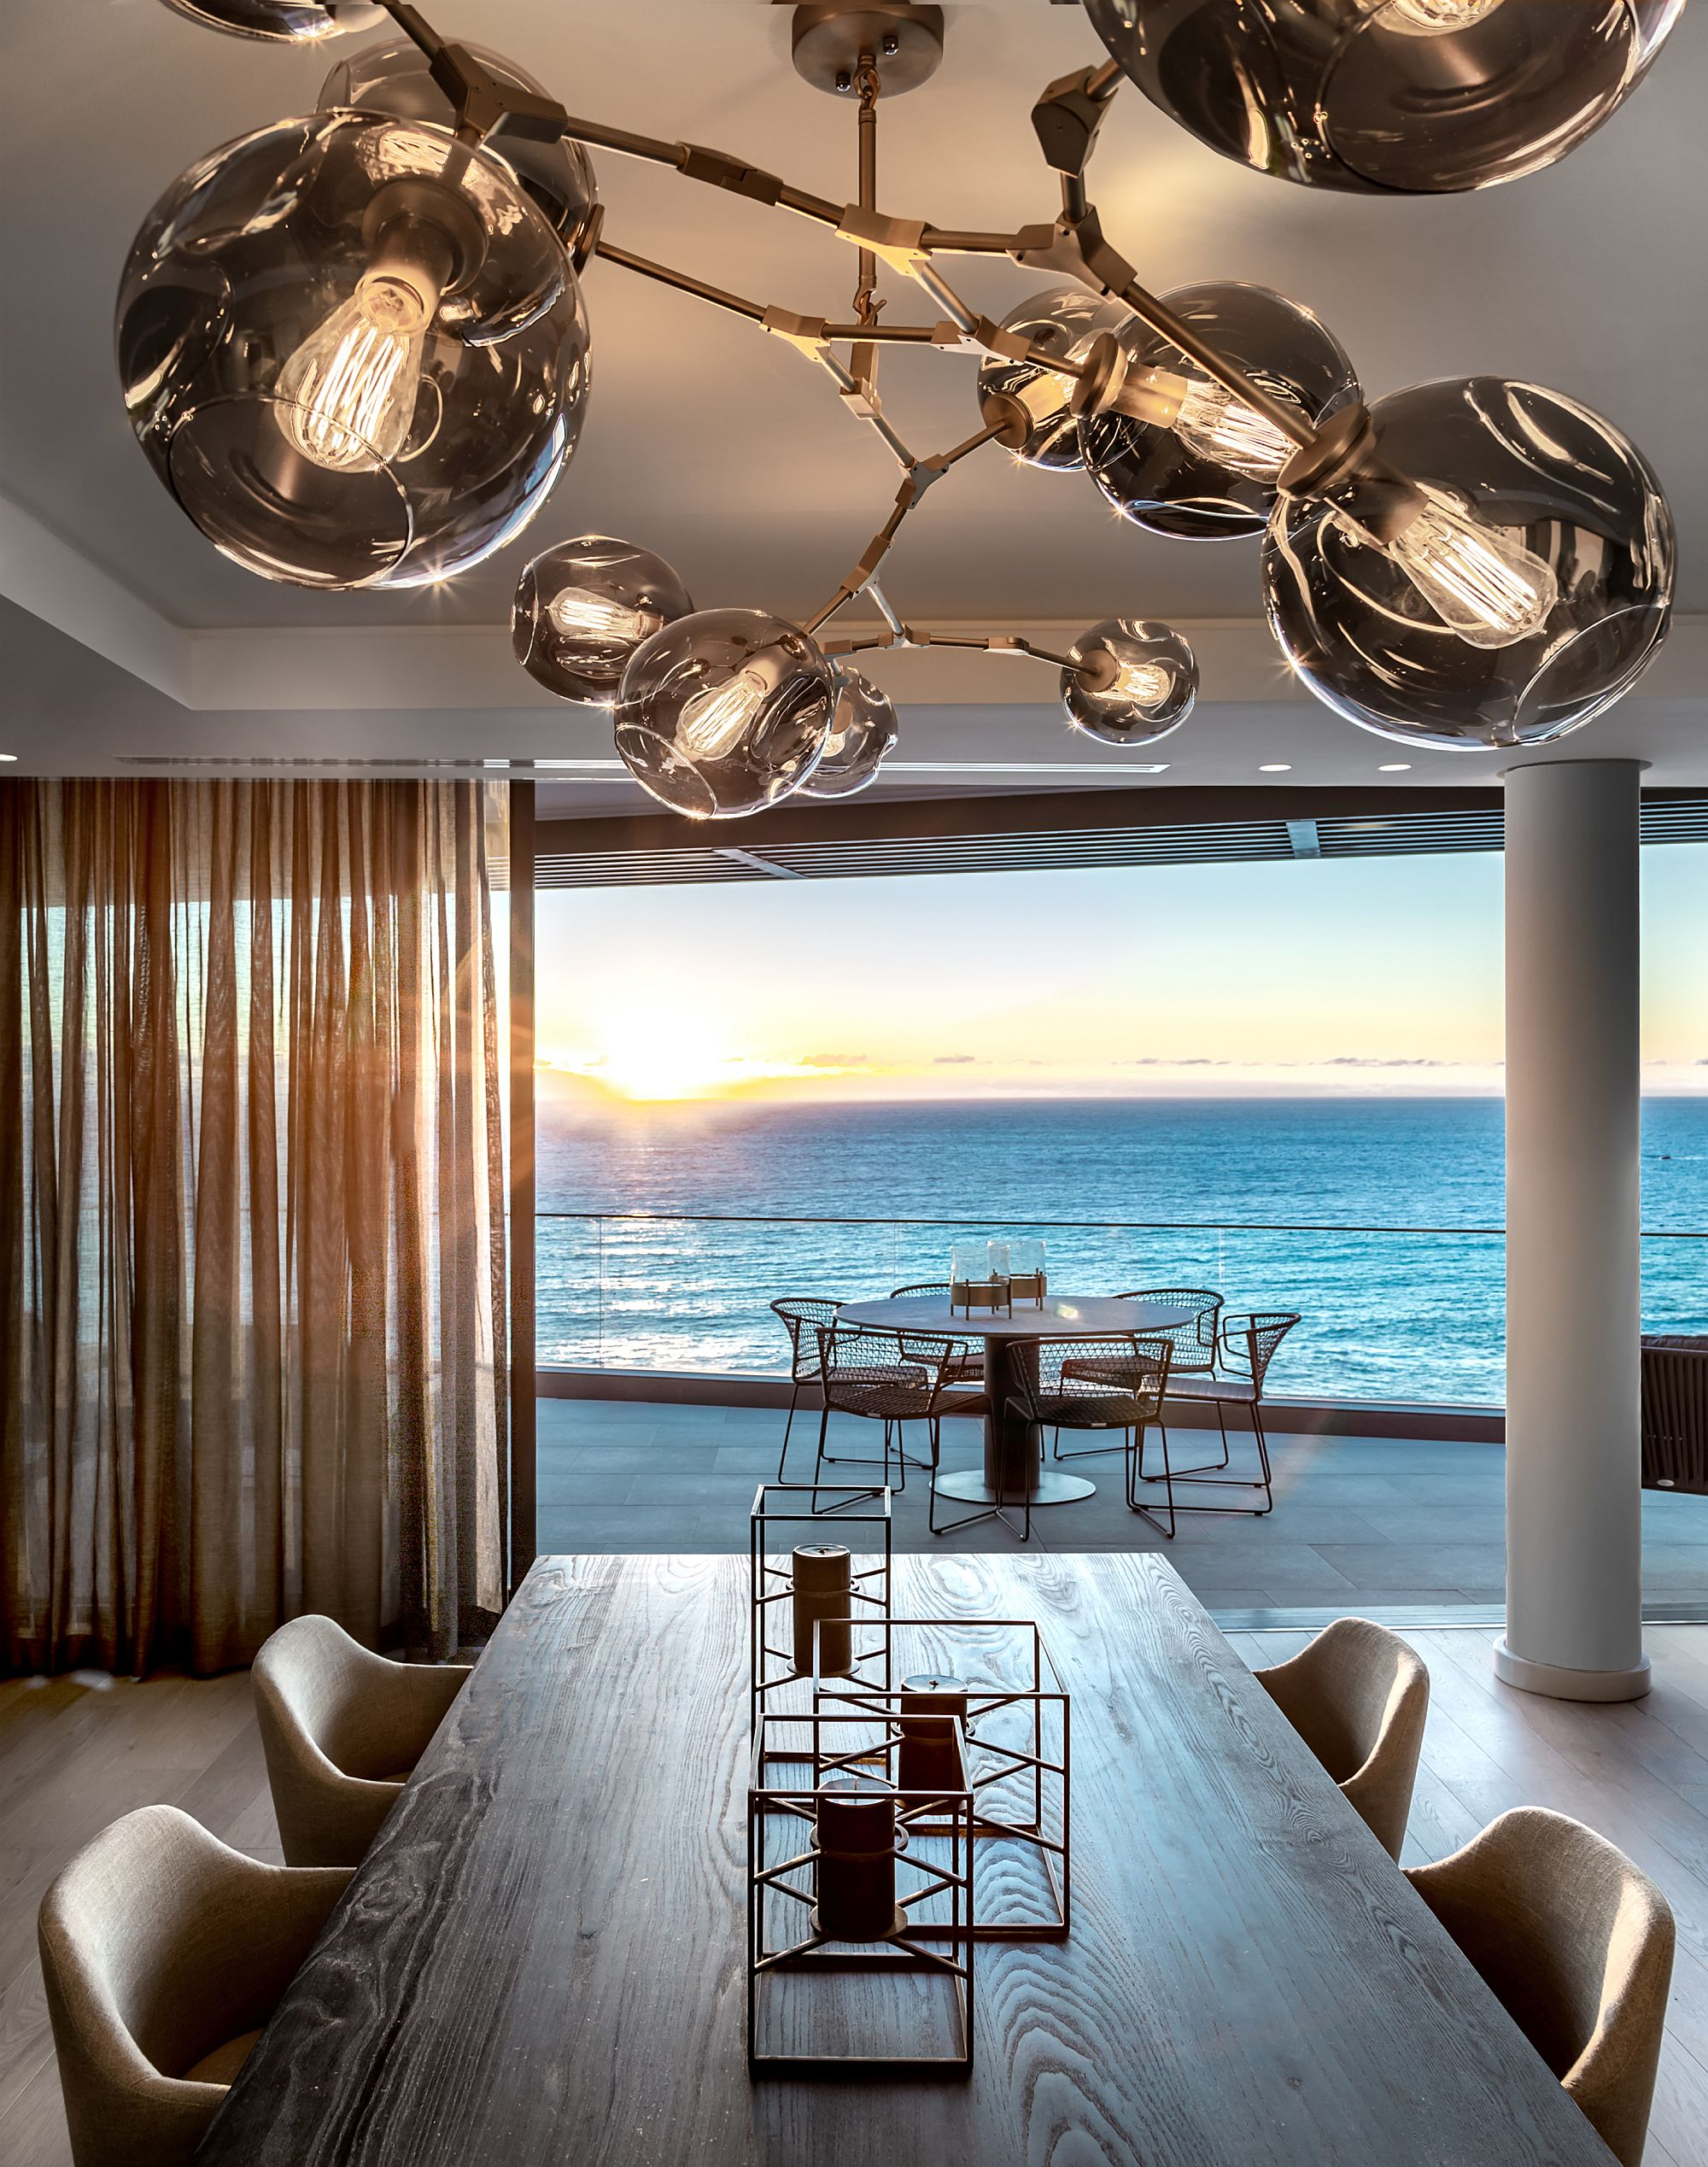 1563443577 954 quiet sophistication draped in the best of cape town stunning clifton 301 by okha - Quiet Sophistication Draped in the Best of Cape Town: Stunning Clifton 301 by OKHA